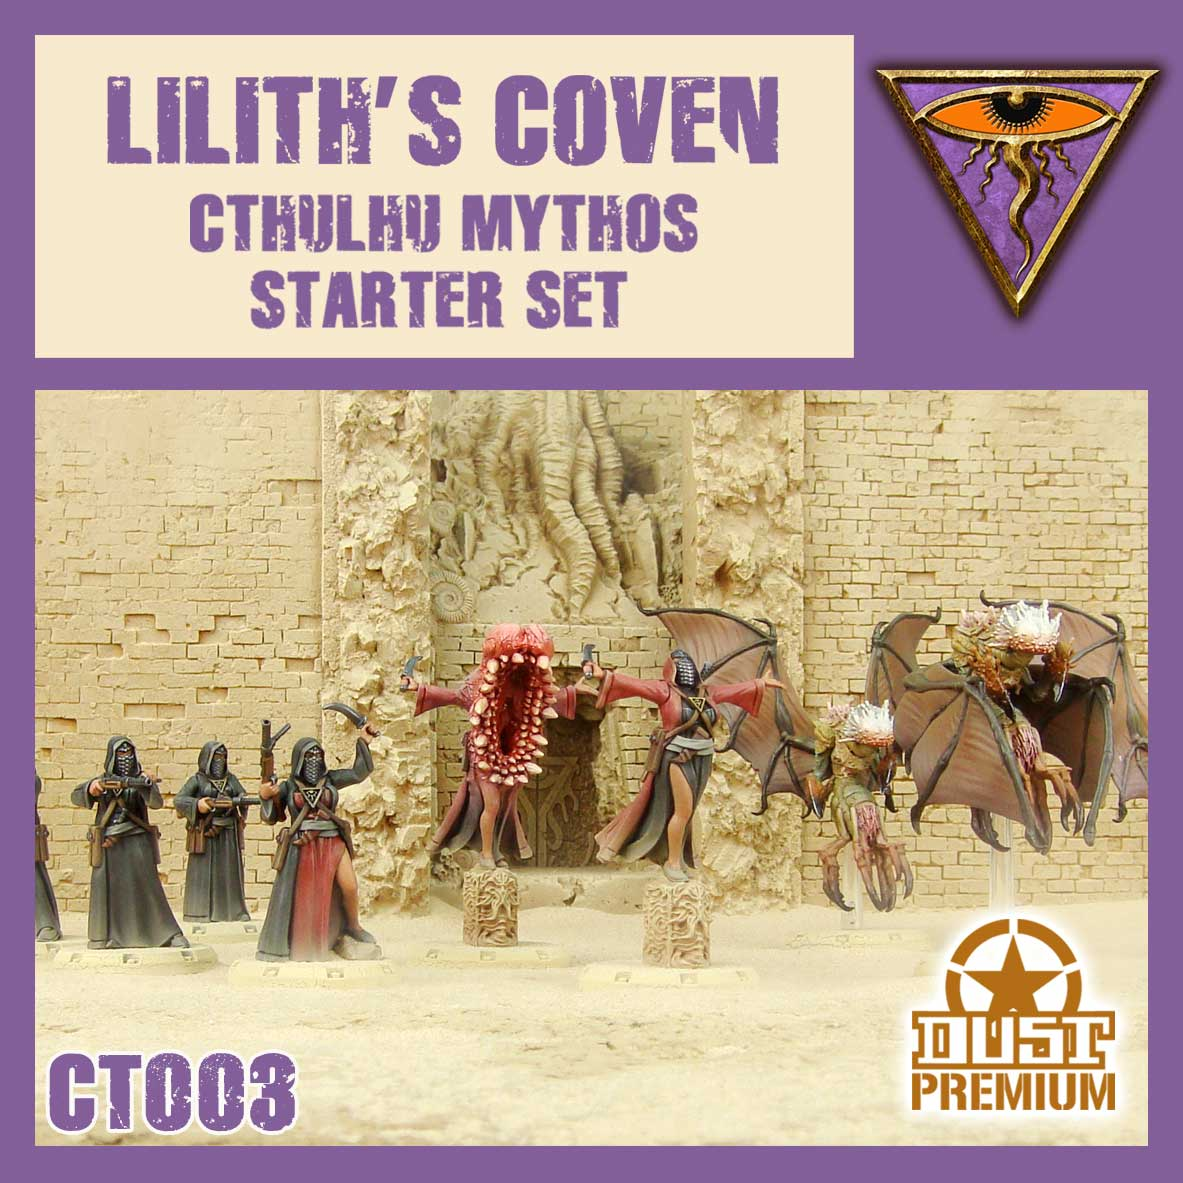 Lilith's Coven